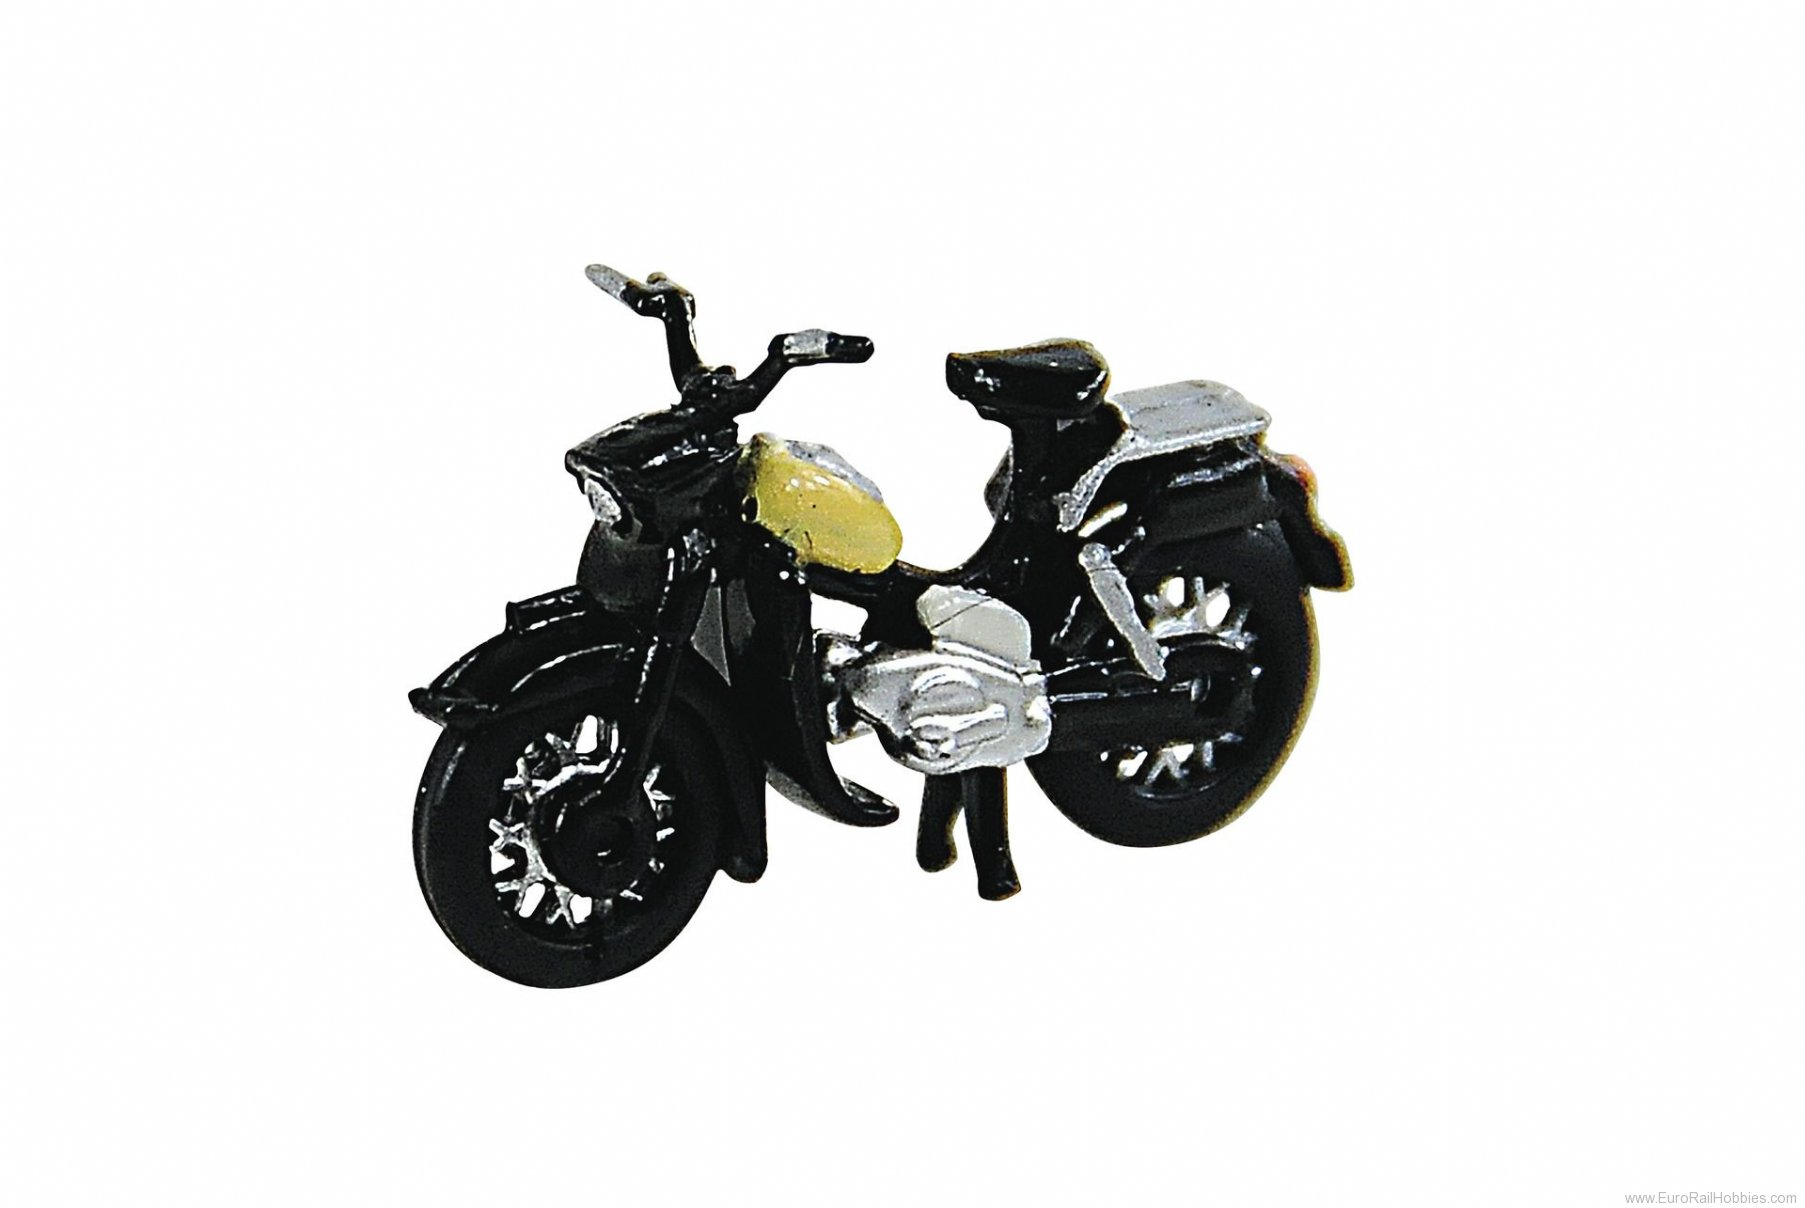 Roco 05377 Austrian Post Puch VS50 Motorcycle